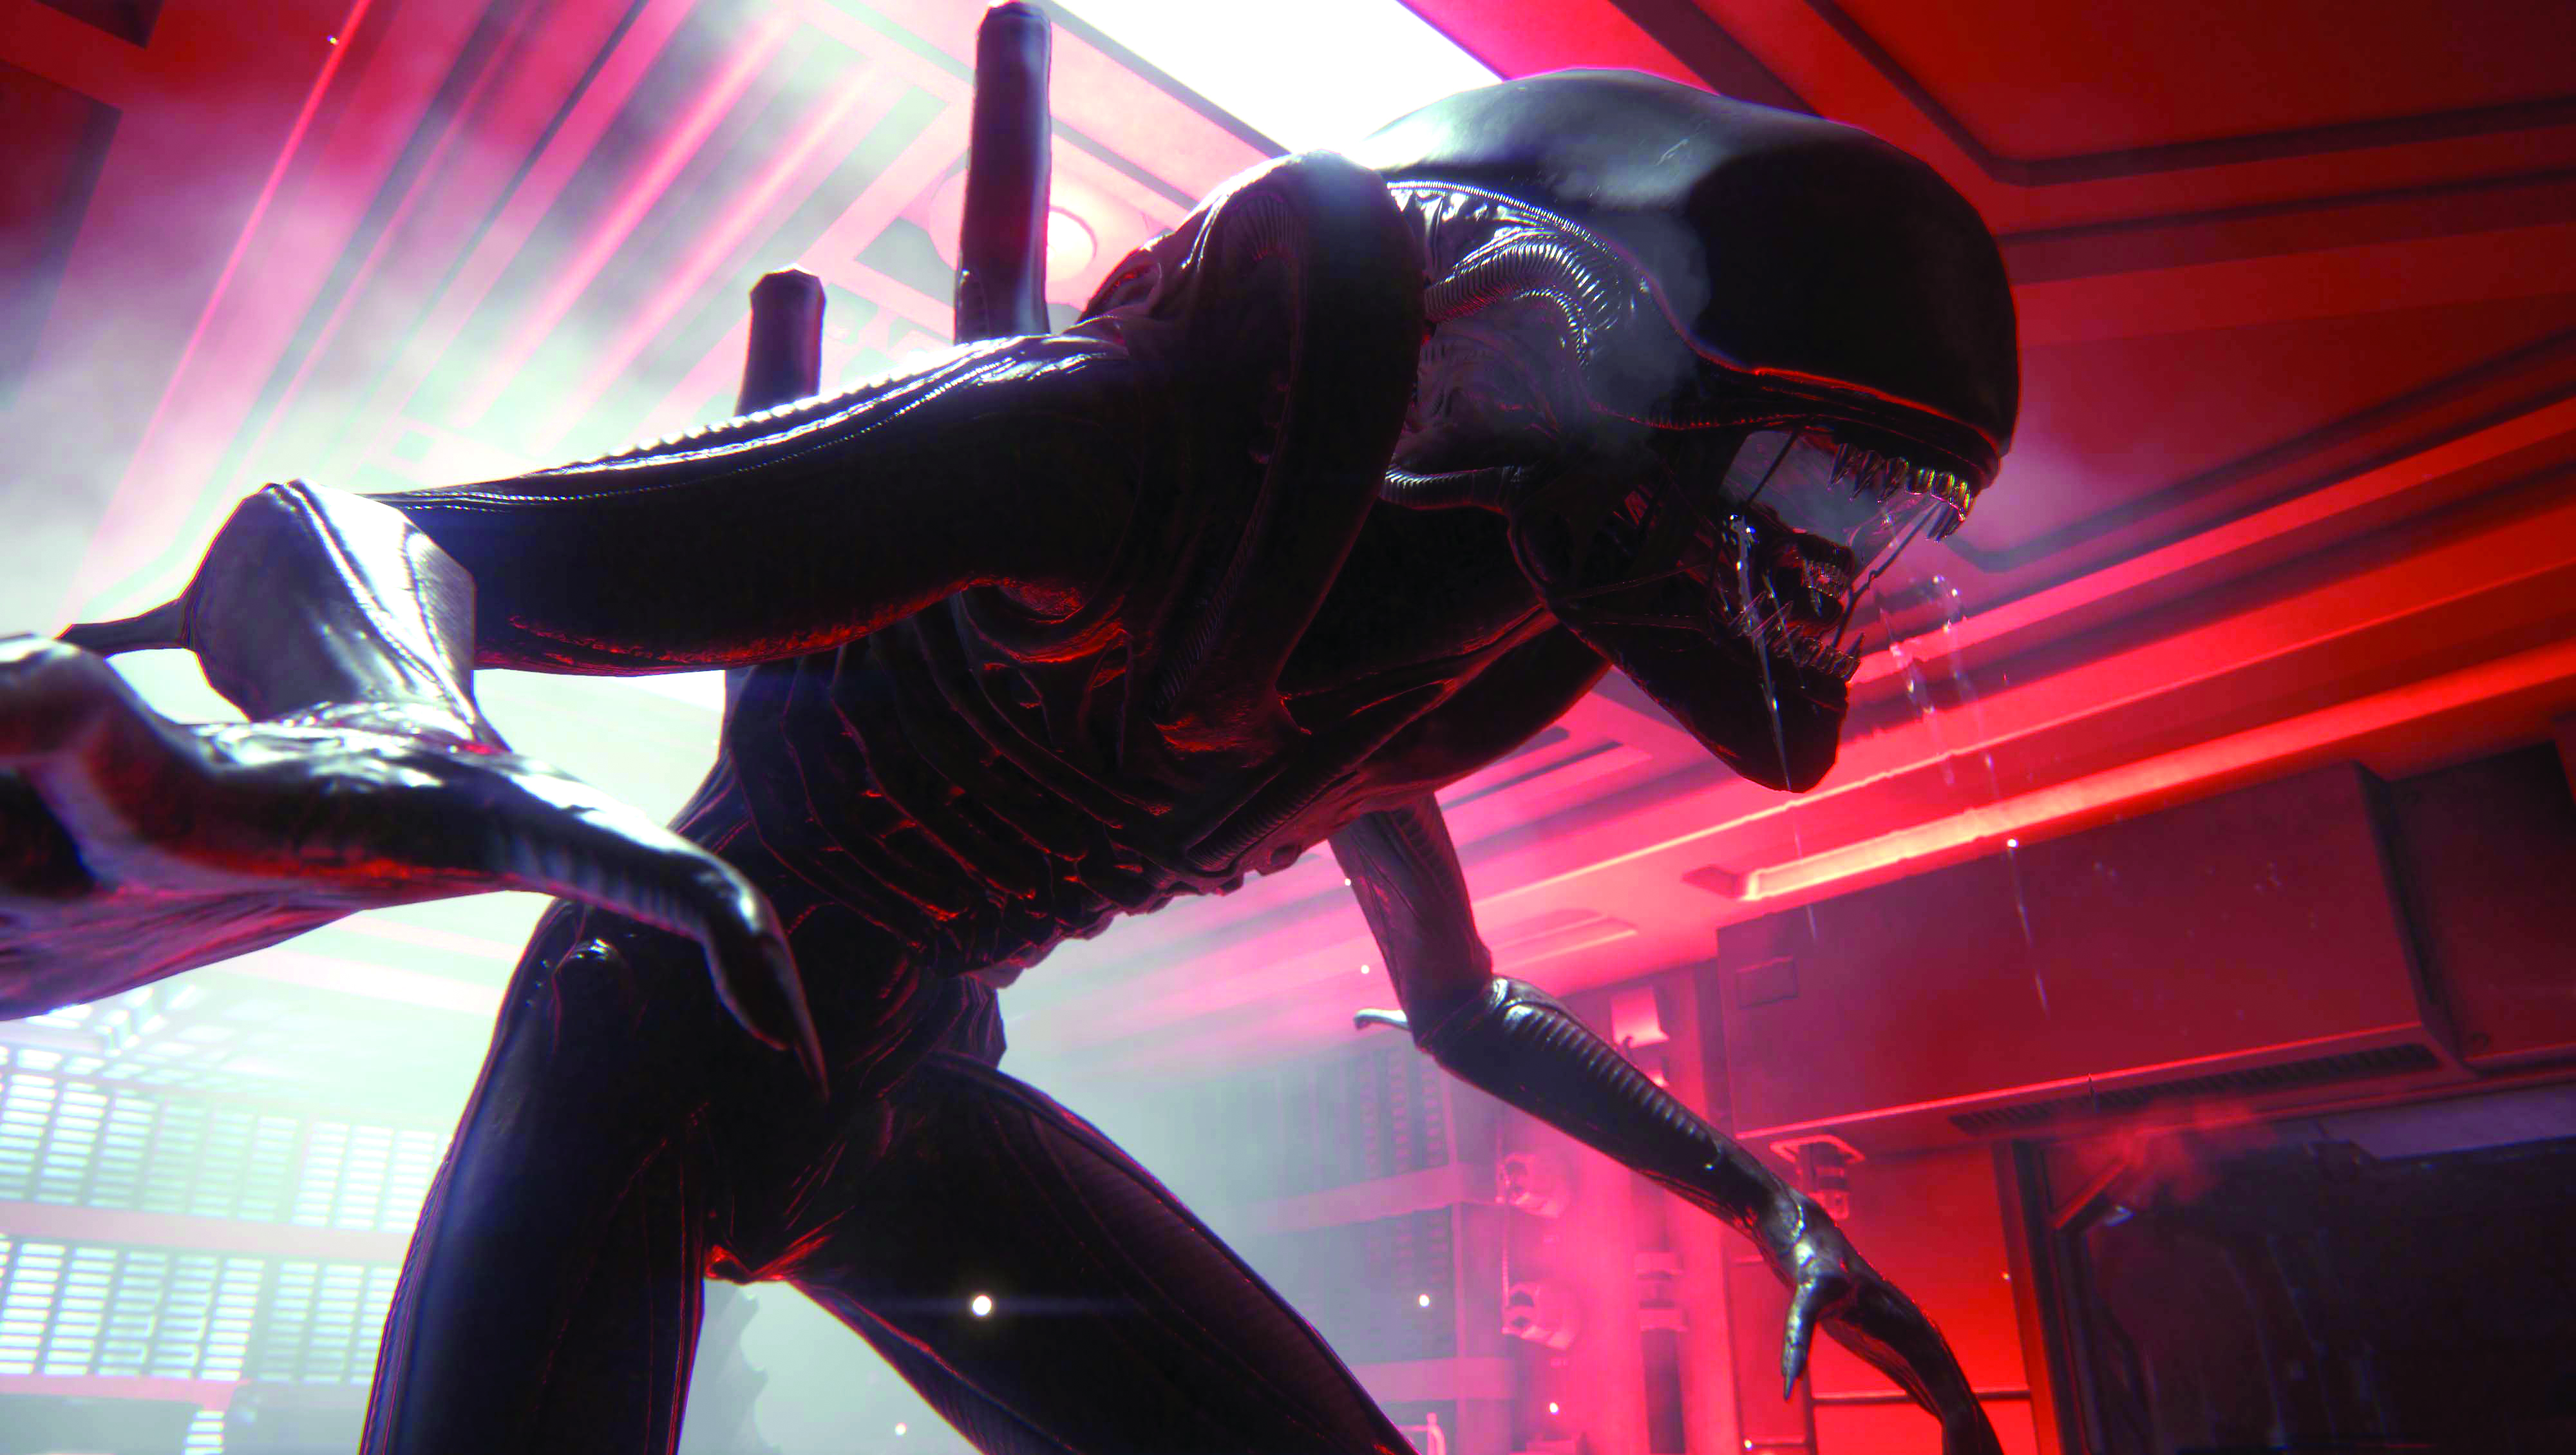 Alien: Isolation is free for 24 hours on the Epic Store